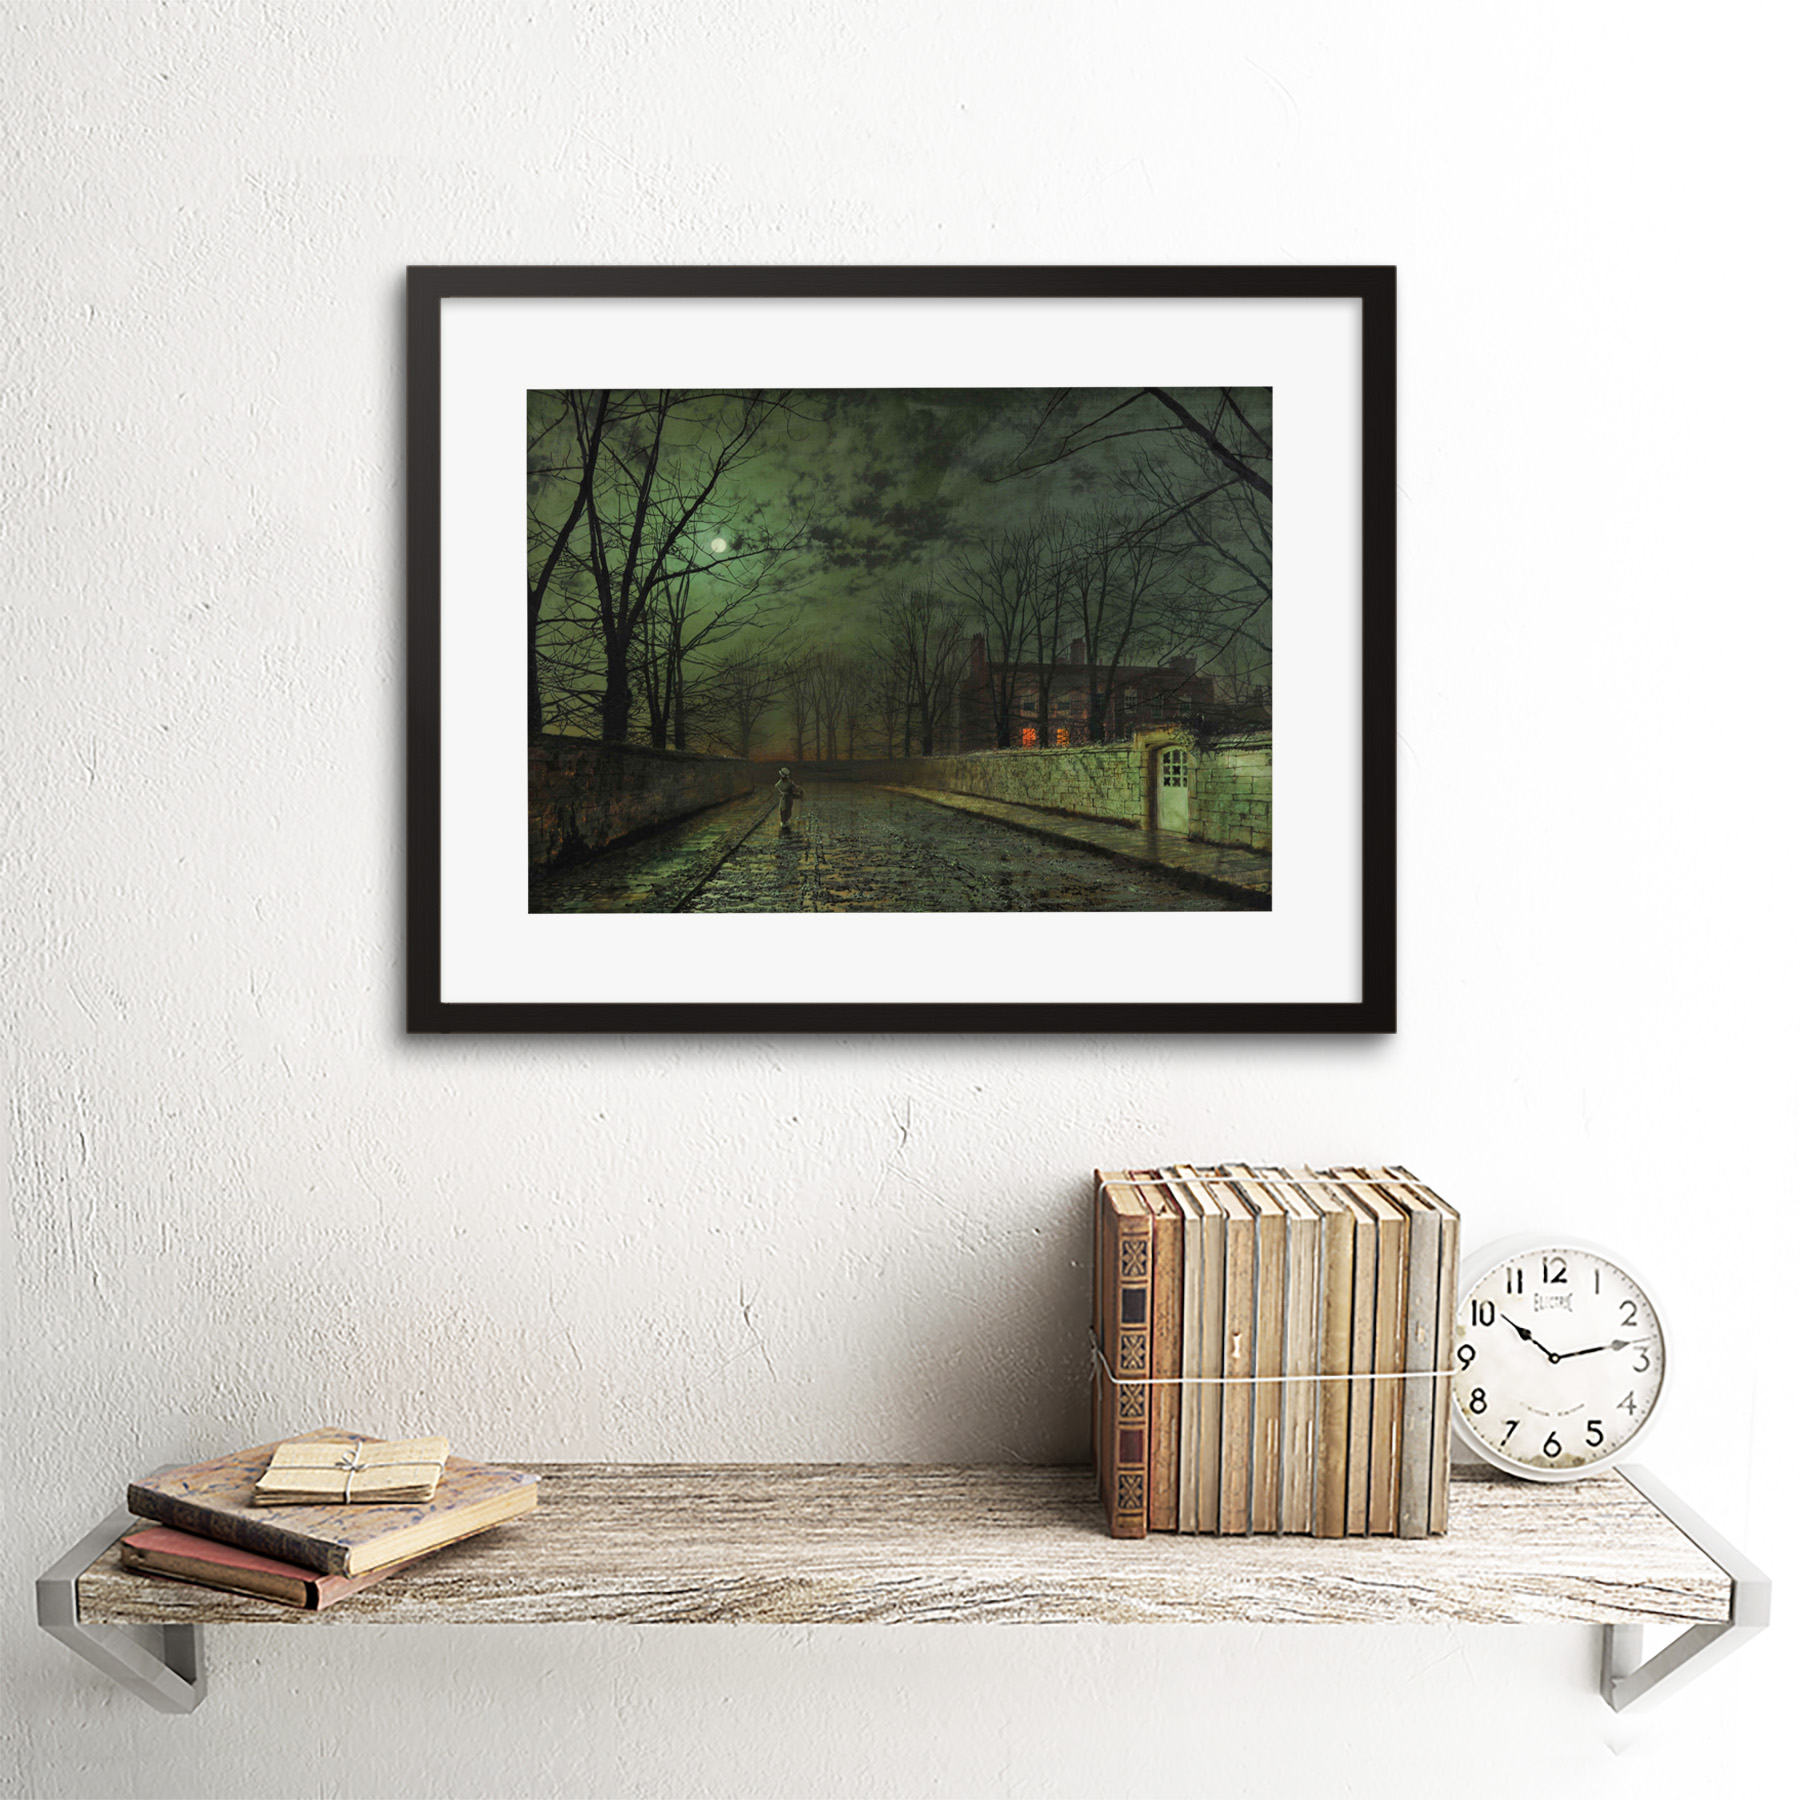 thumbnail 3 - Grimshaw-Moonlit-Street-Painting-Framed-Art-Print-Picture-Mount-12x16-Inch